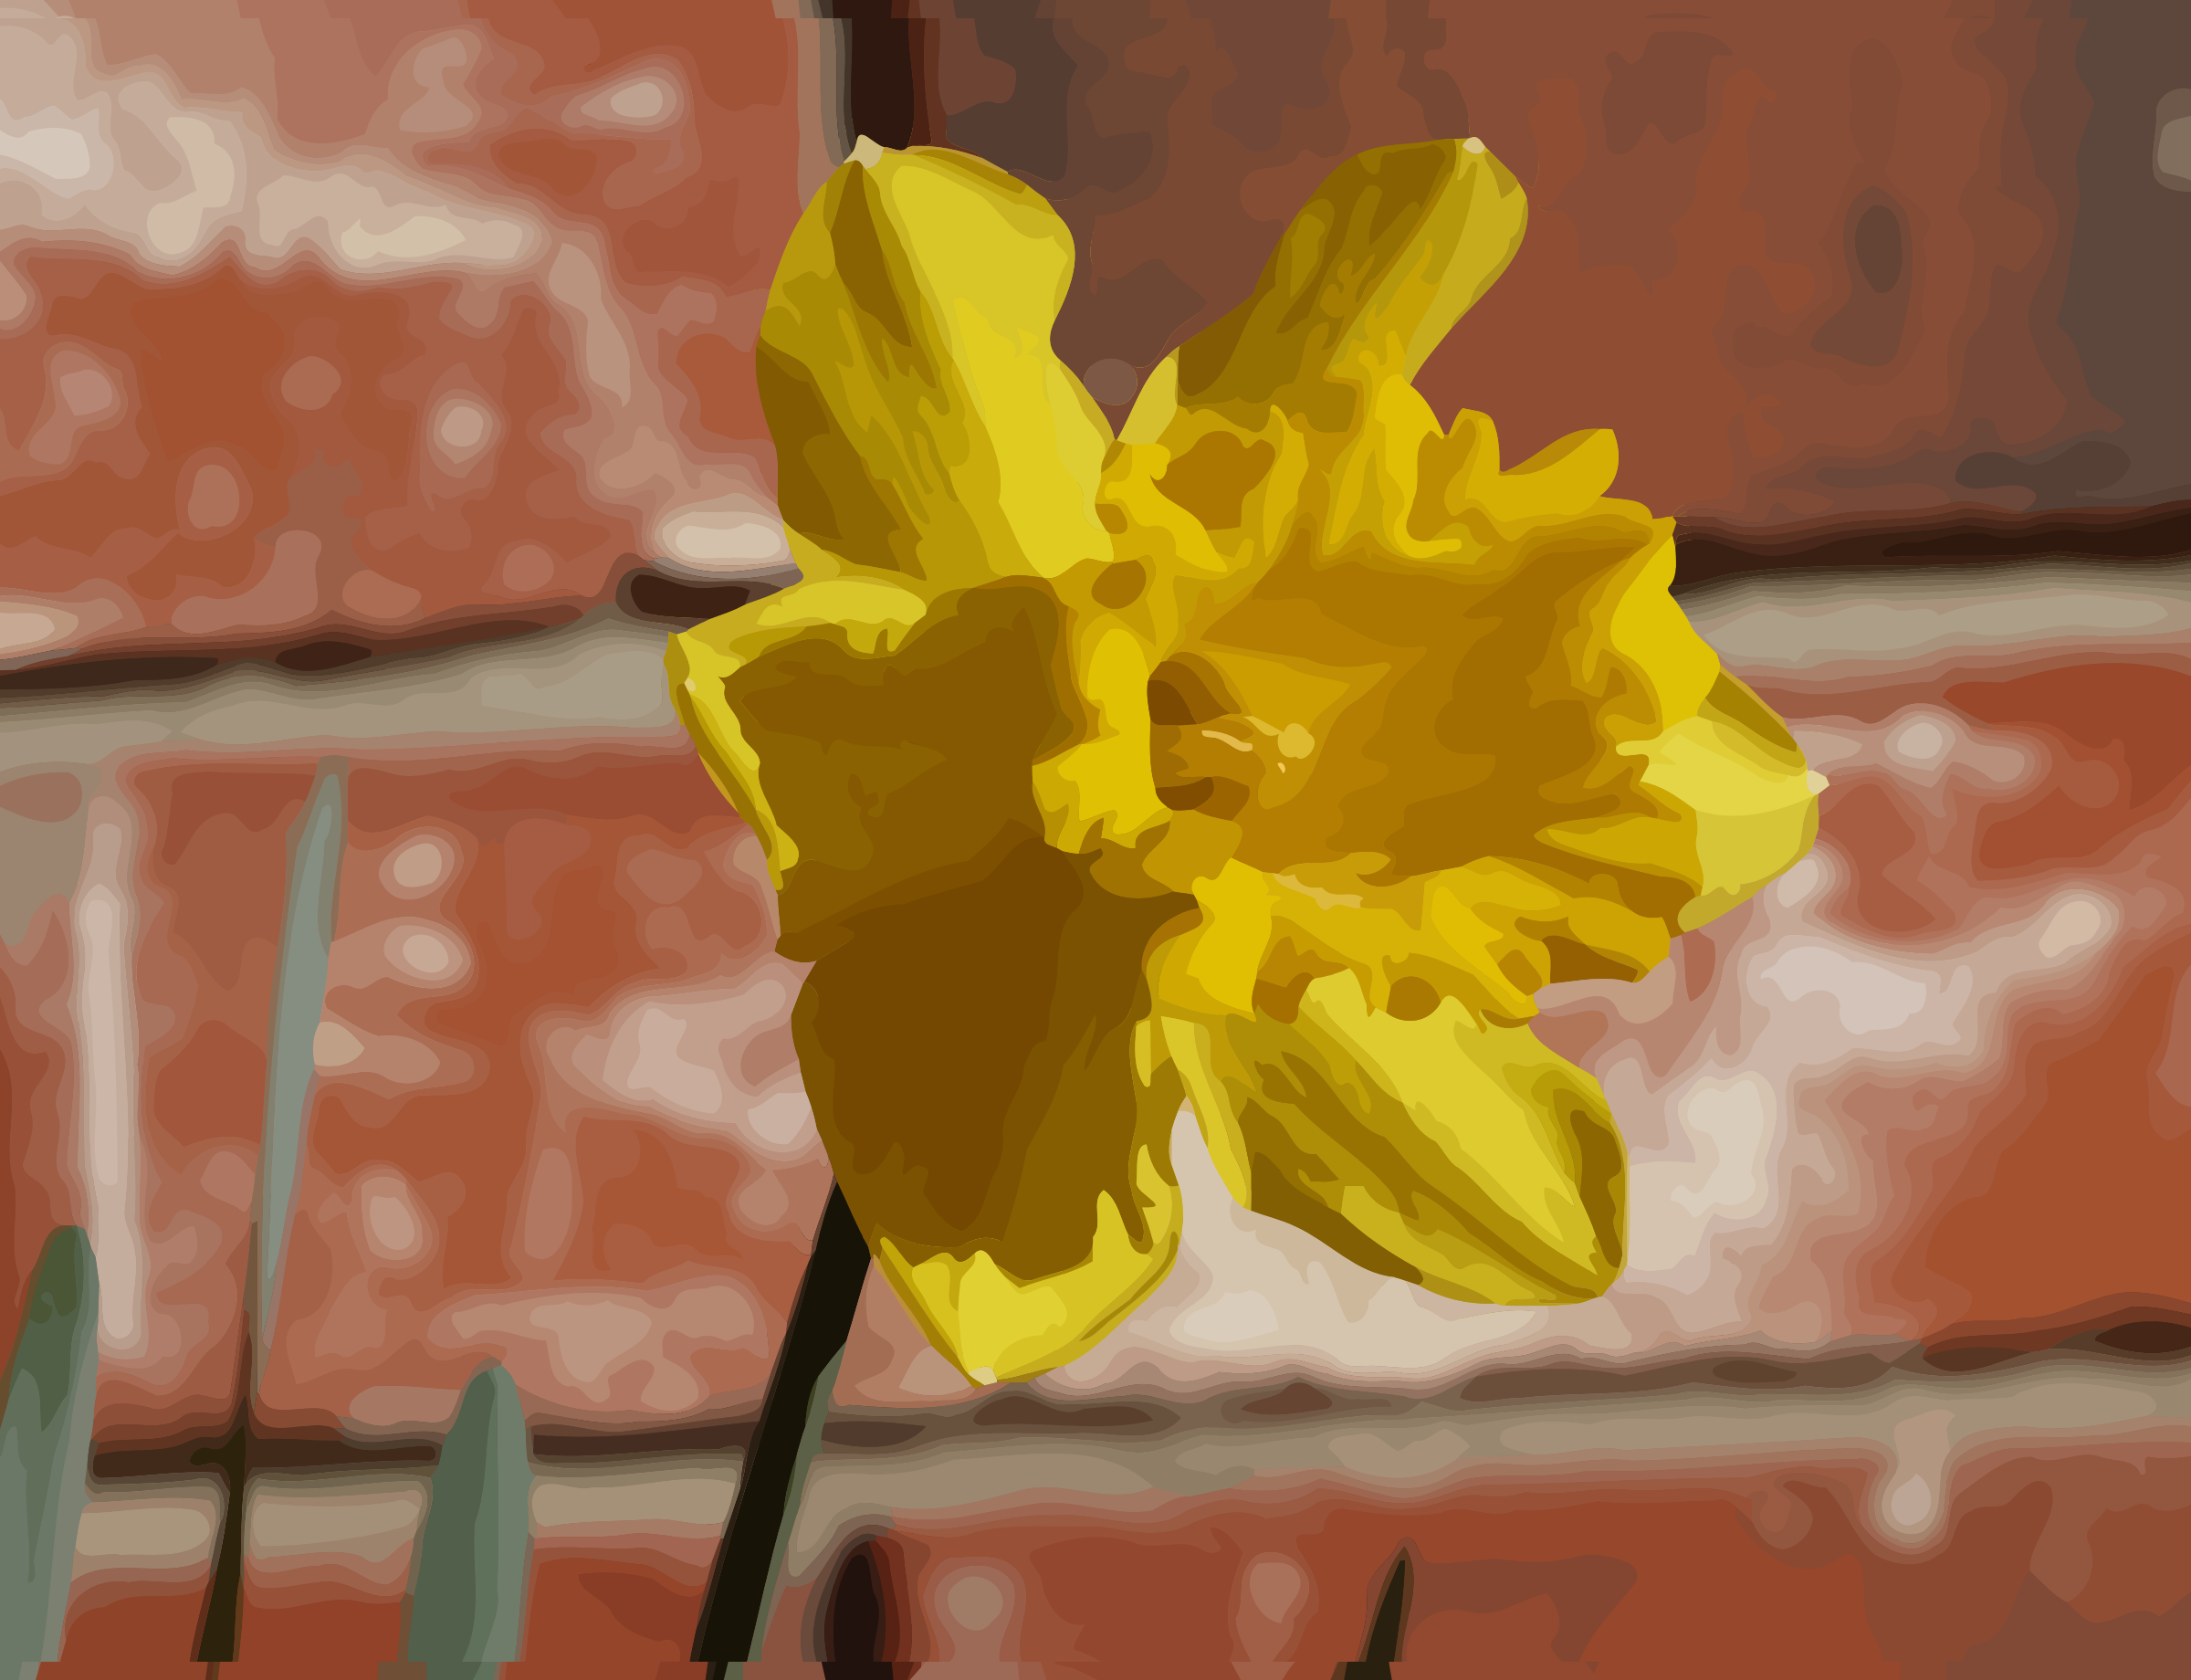 daffodils-05 by datteber